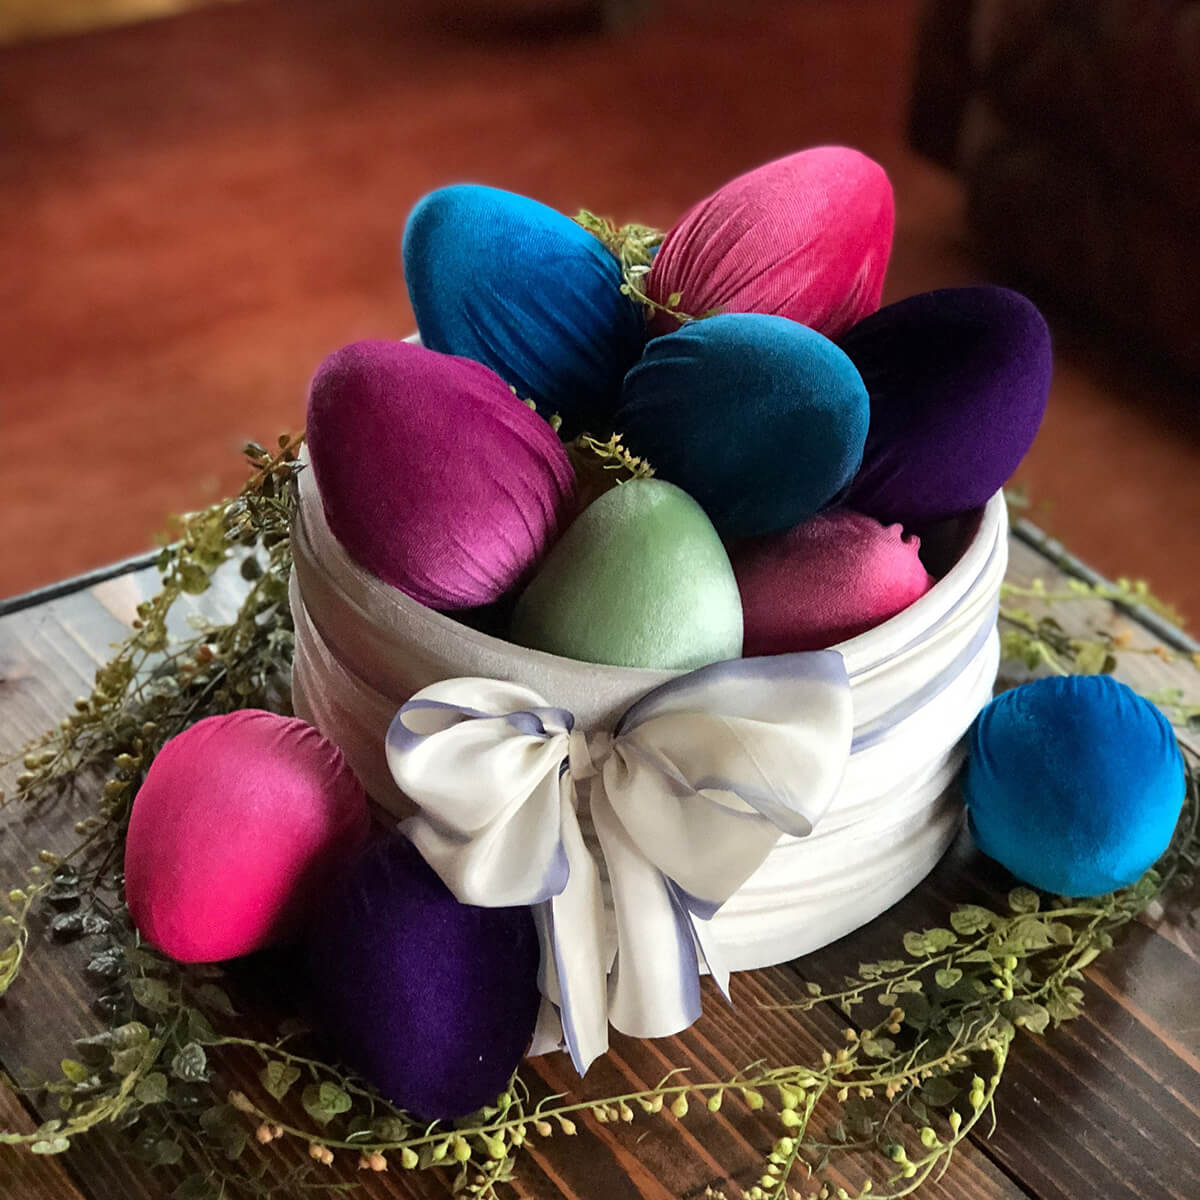 Luxurious and Vibrant Velvet Eggs Collection